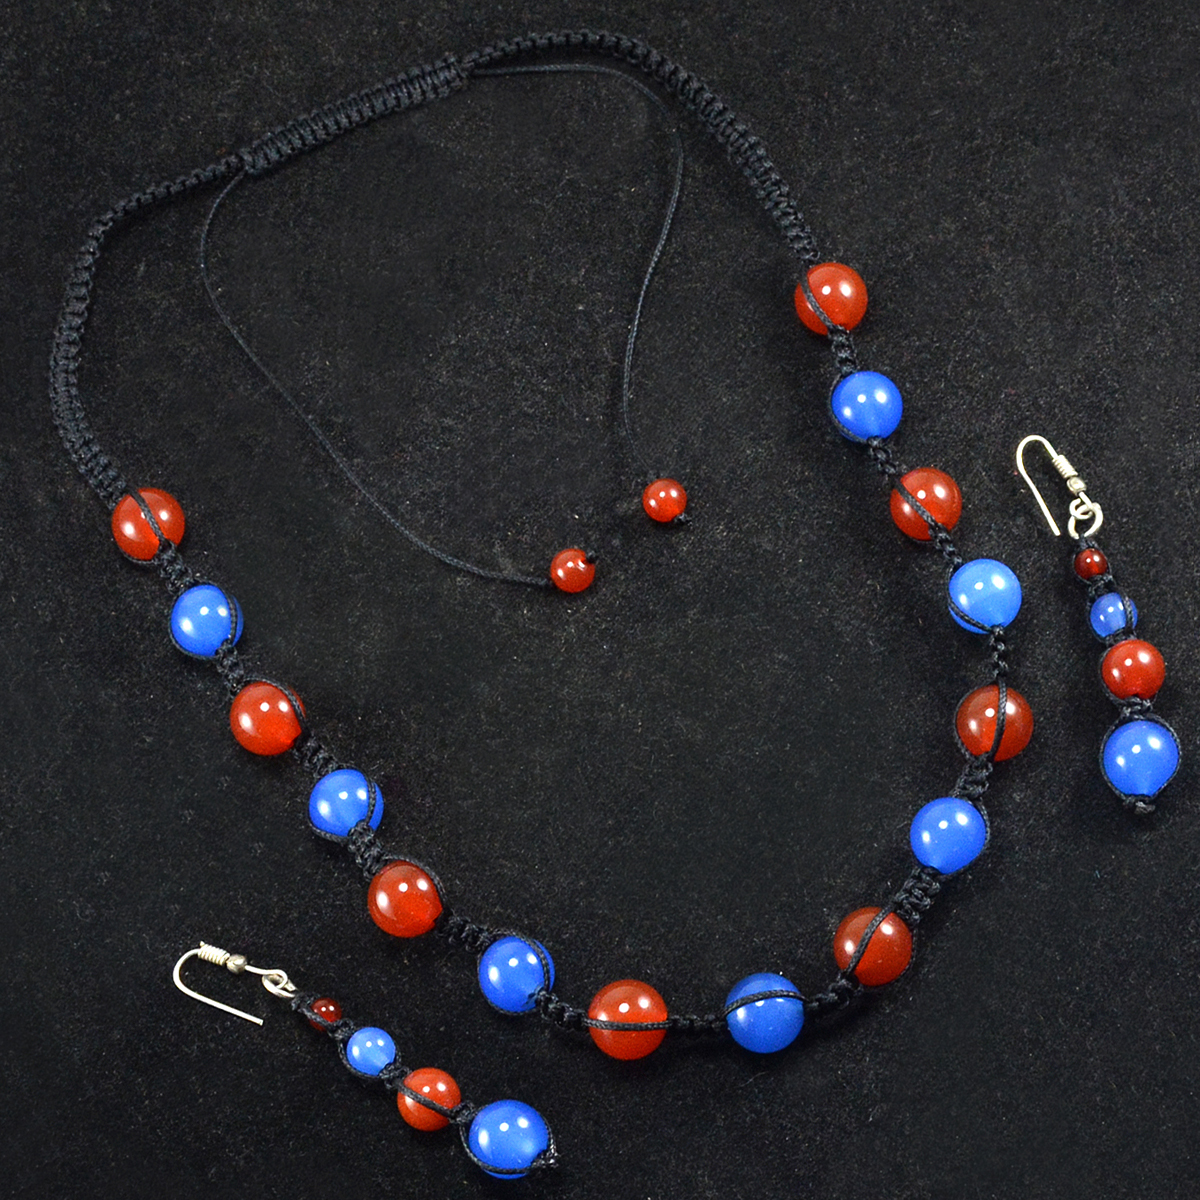 Handmade Jewelry Manufacturer- 925 Sterling Silver- Carnelian & Blue Chalcedony- Necklace & Earring Set- Jaipur Rajasthan India